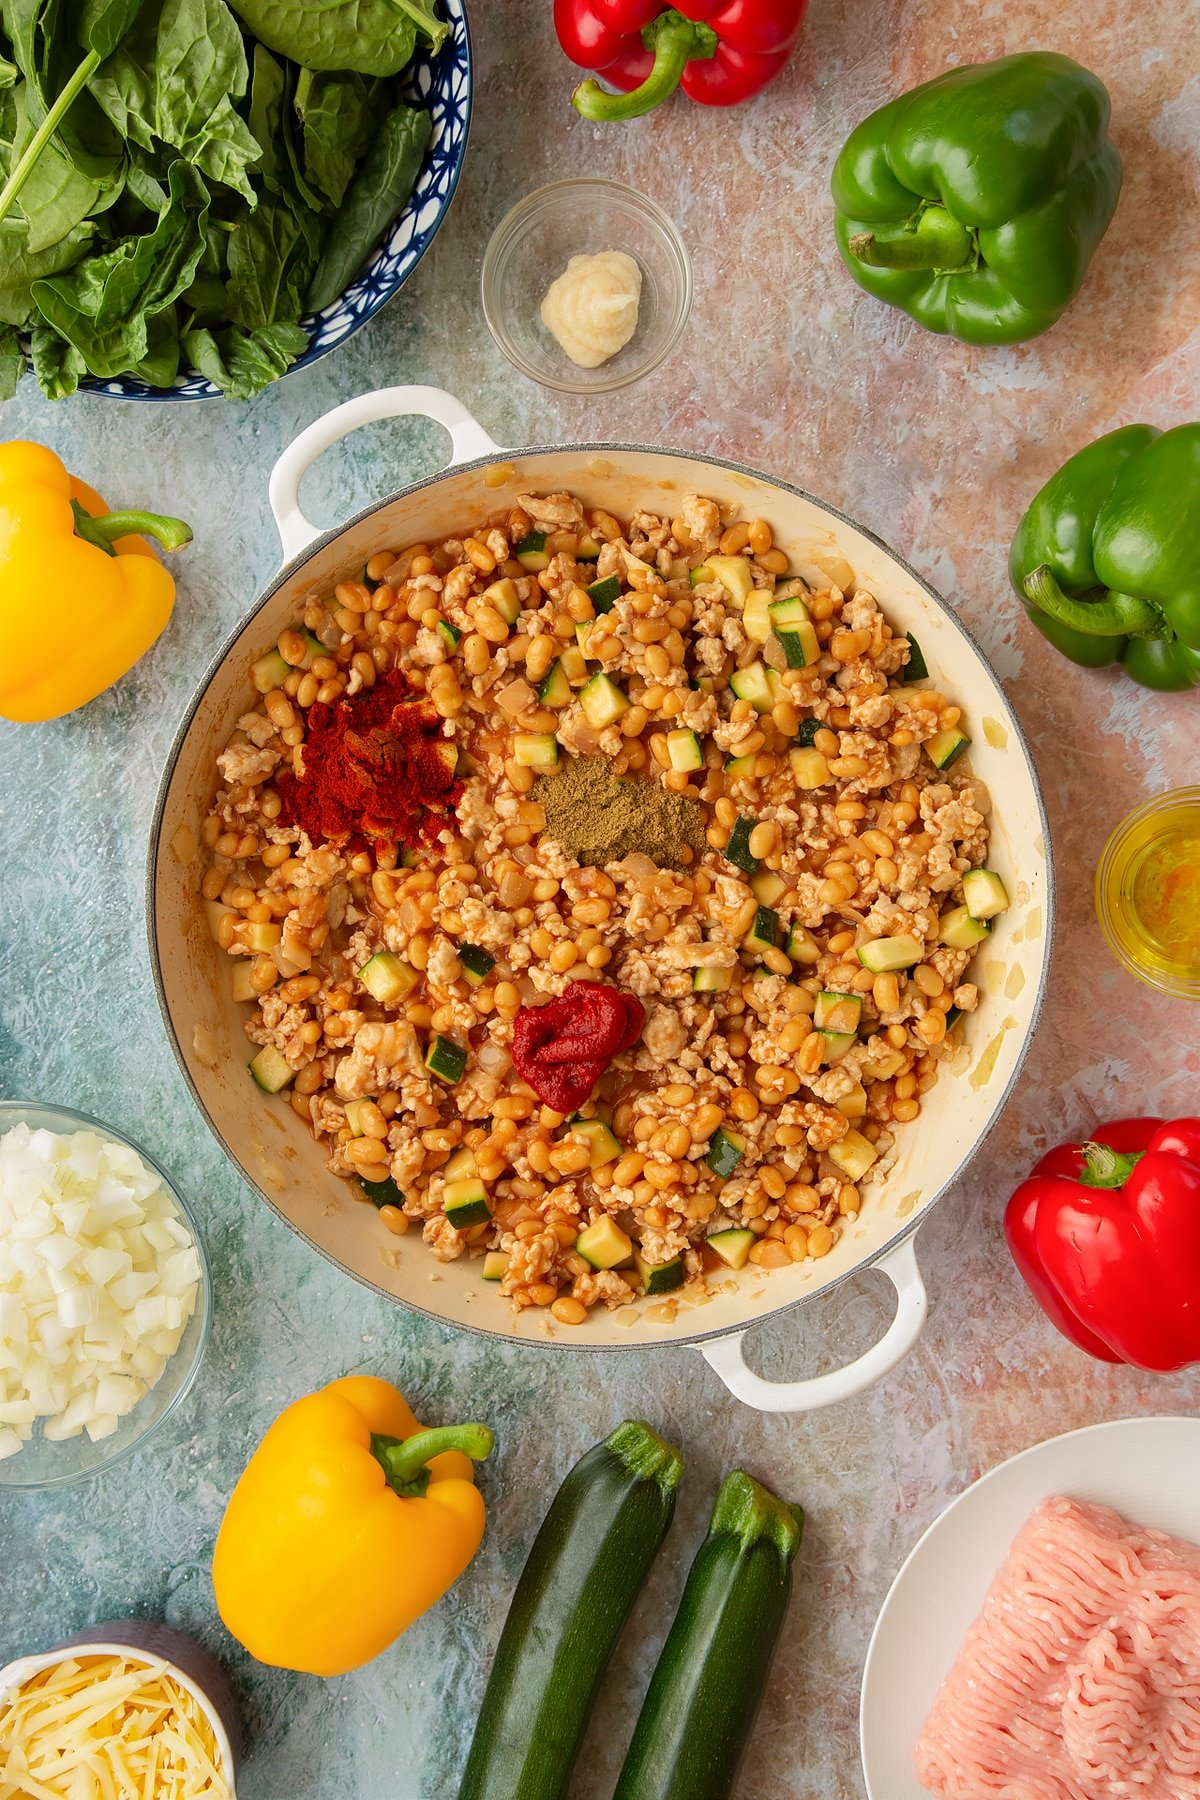 Onions, garlic, turkey mince, courgette, baked beans and turkey mince in a large shallow pan, with tomato puree, cumin and smoked paprika on top. Ingredients to make baked bean stuffed peppers surround the pan.